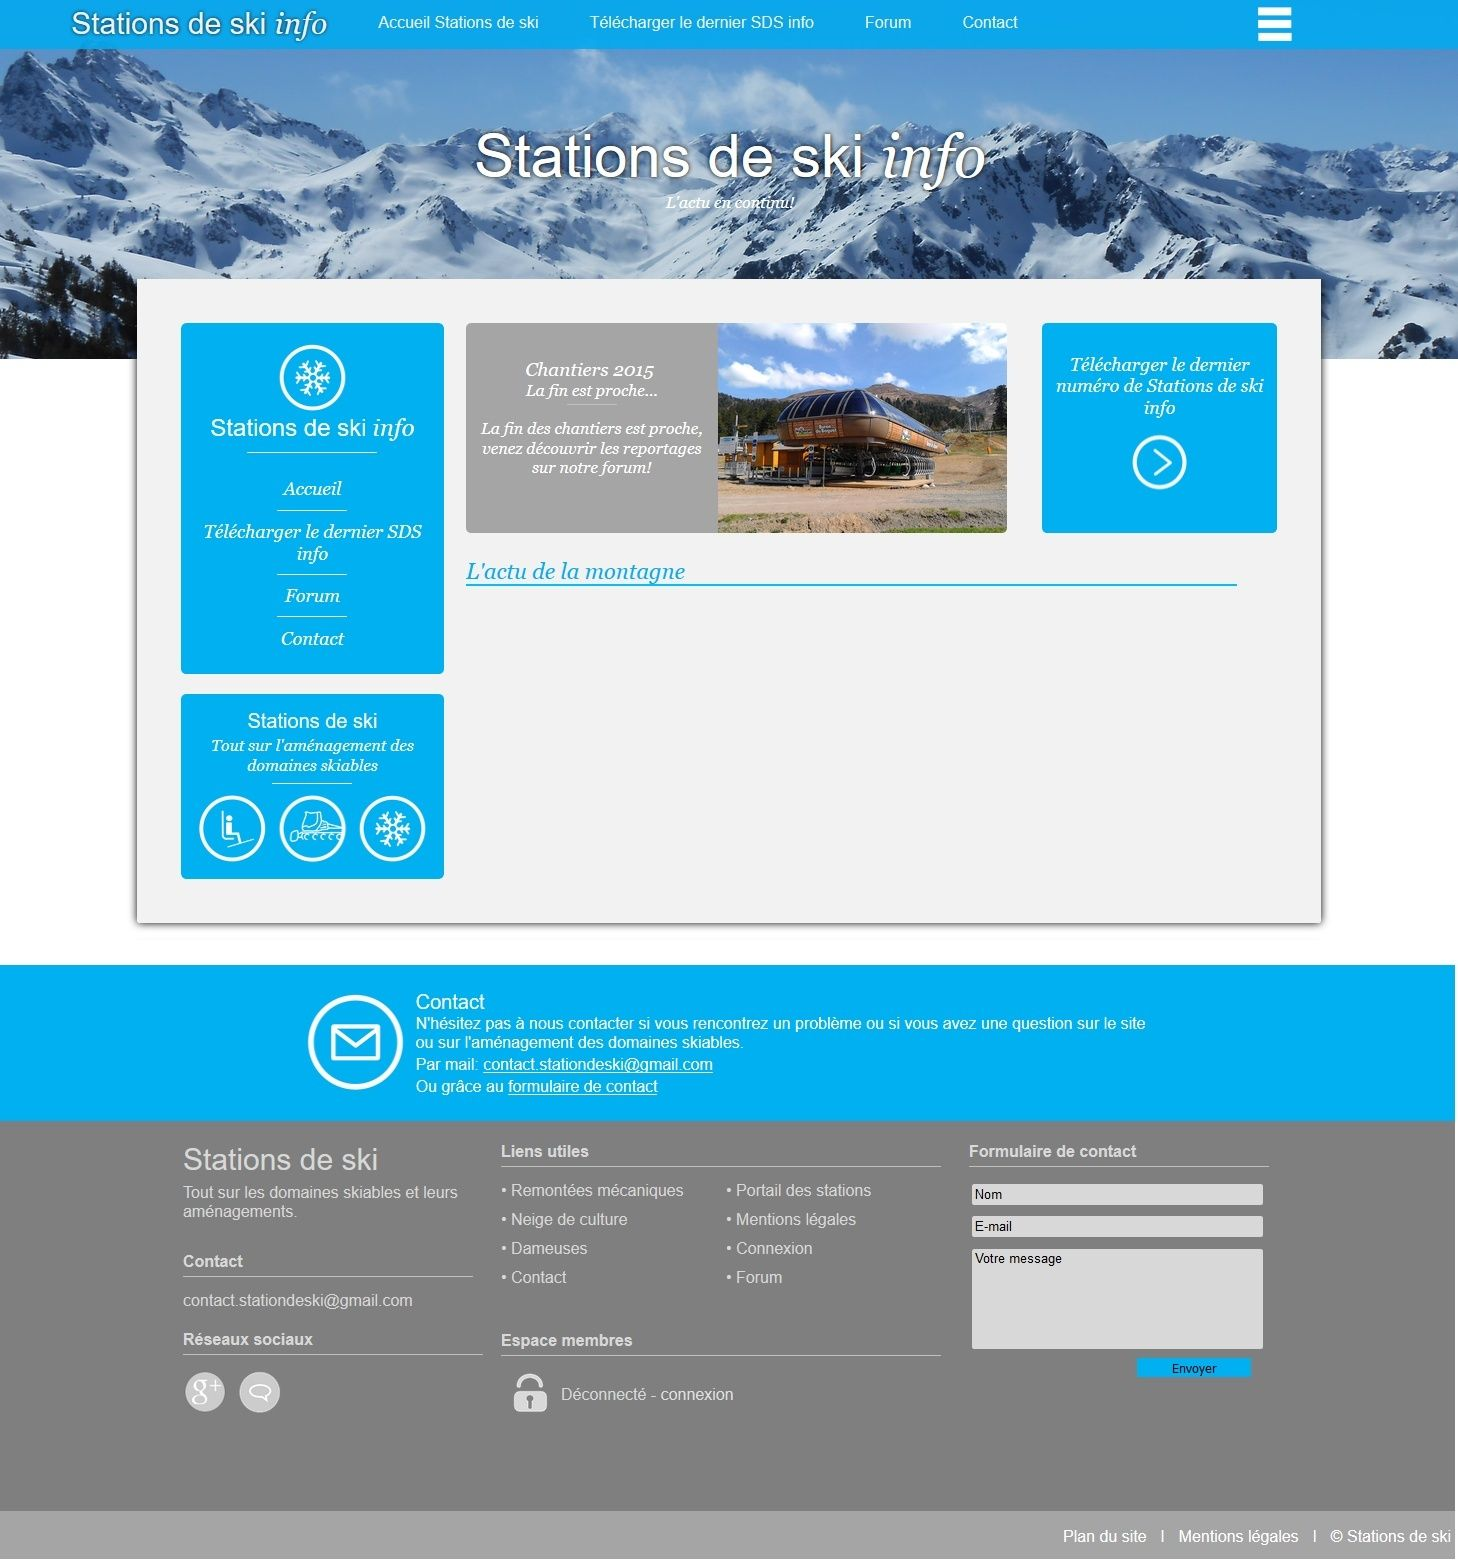 Nouveau site Stations de ski - Page 2 Sds-in10